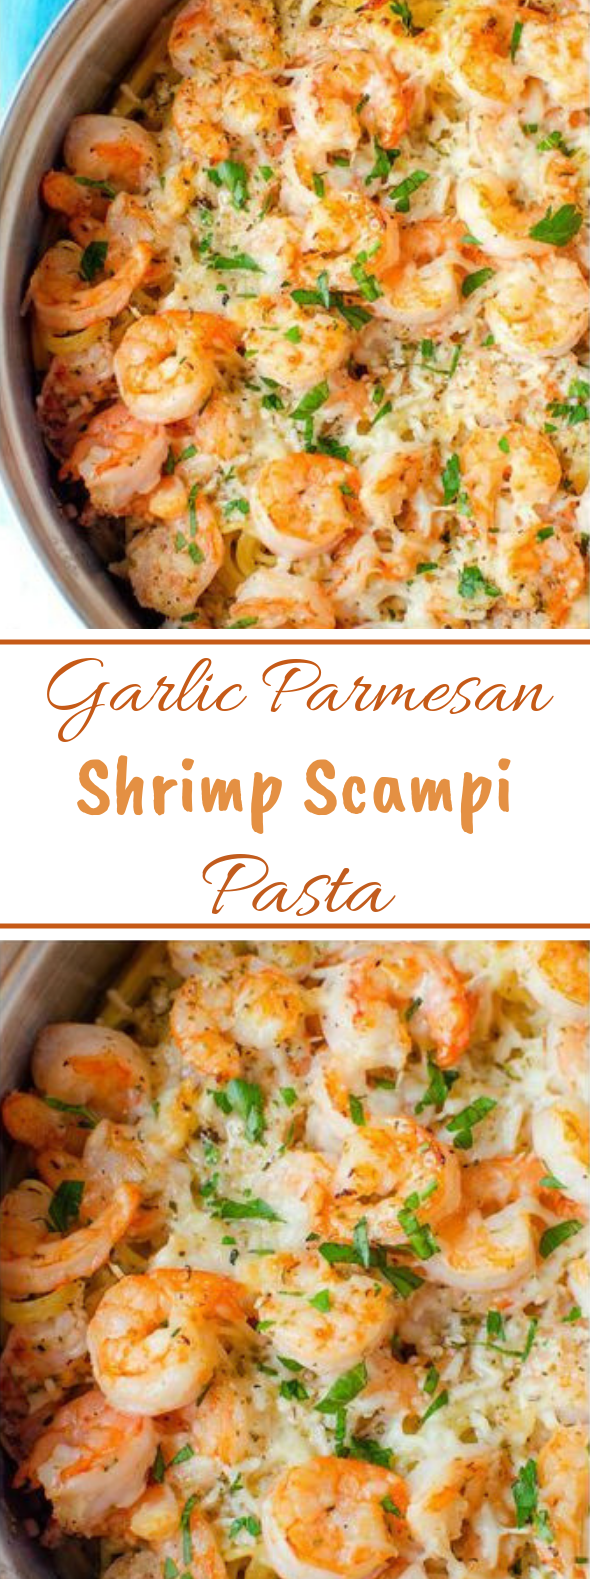 Garlic Parmesan Shrimp Scampi Pasta #quick #dinner